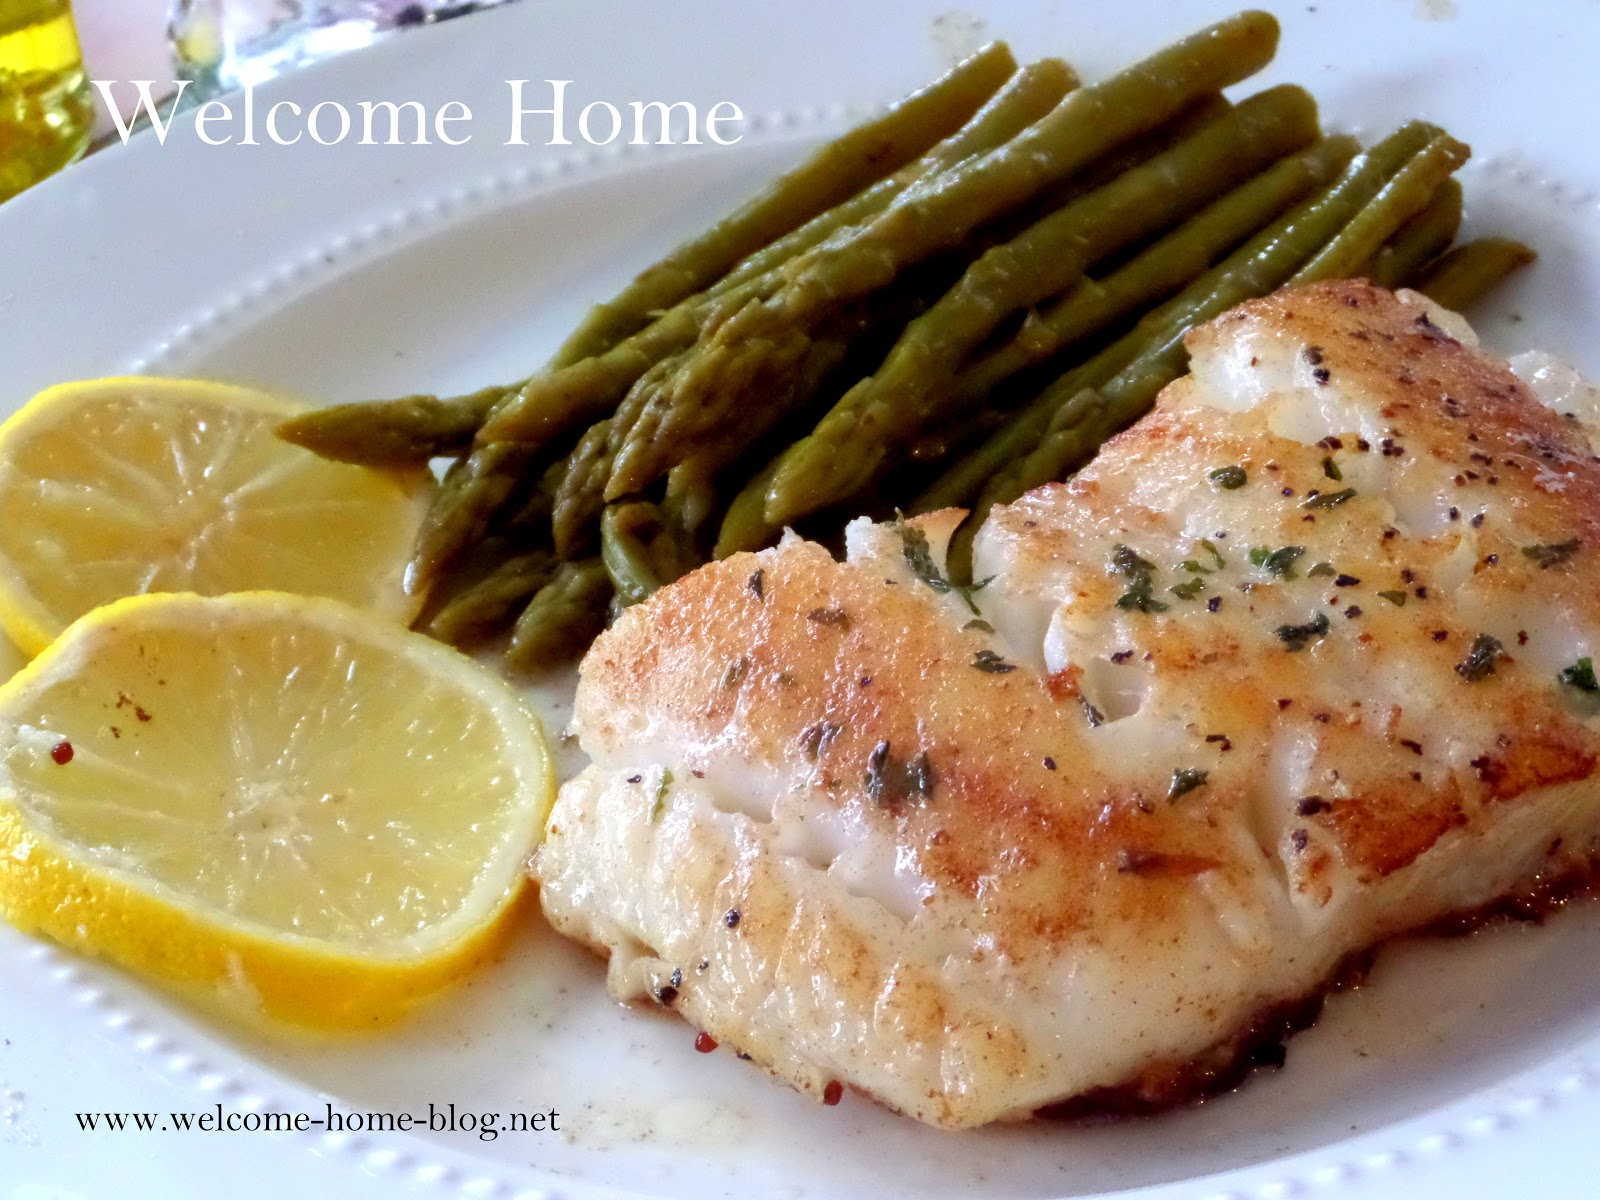 Welcome Home Blog: Pan Seared Chilean Sea Bass